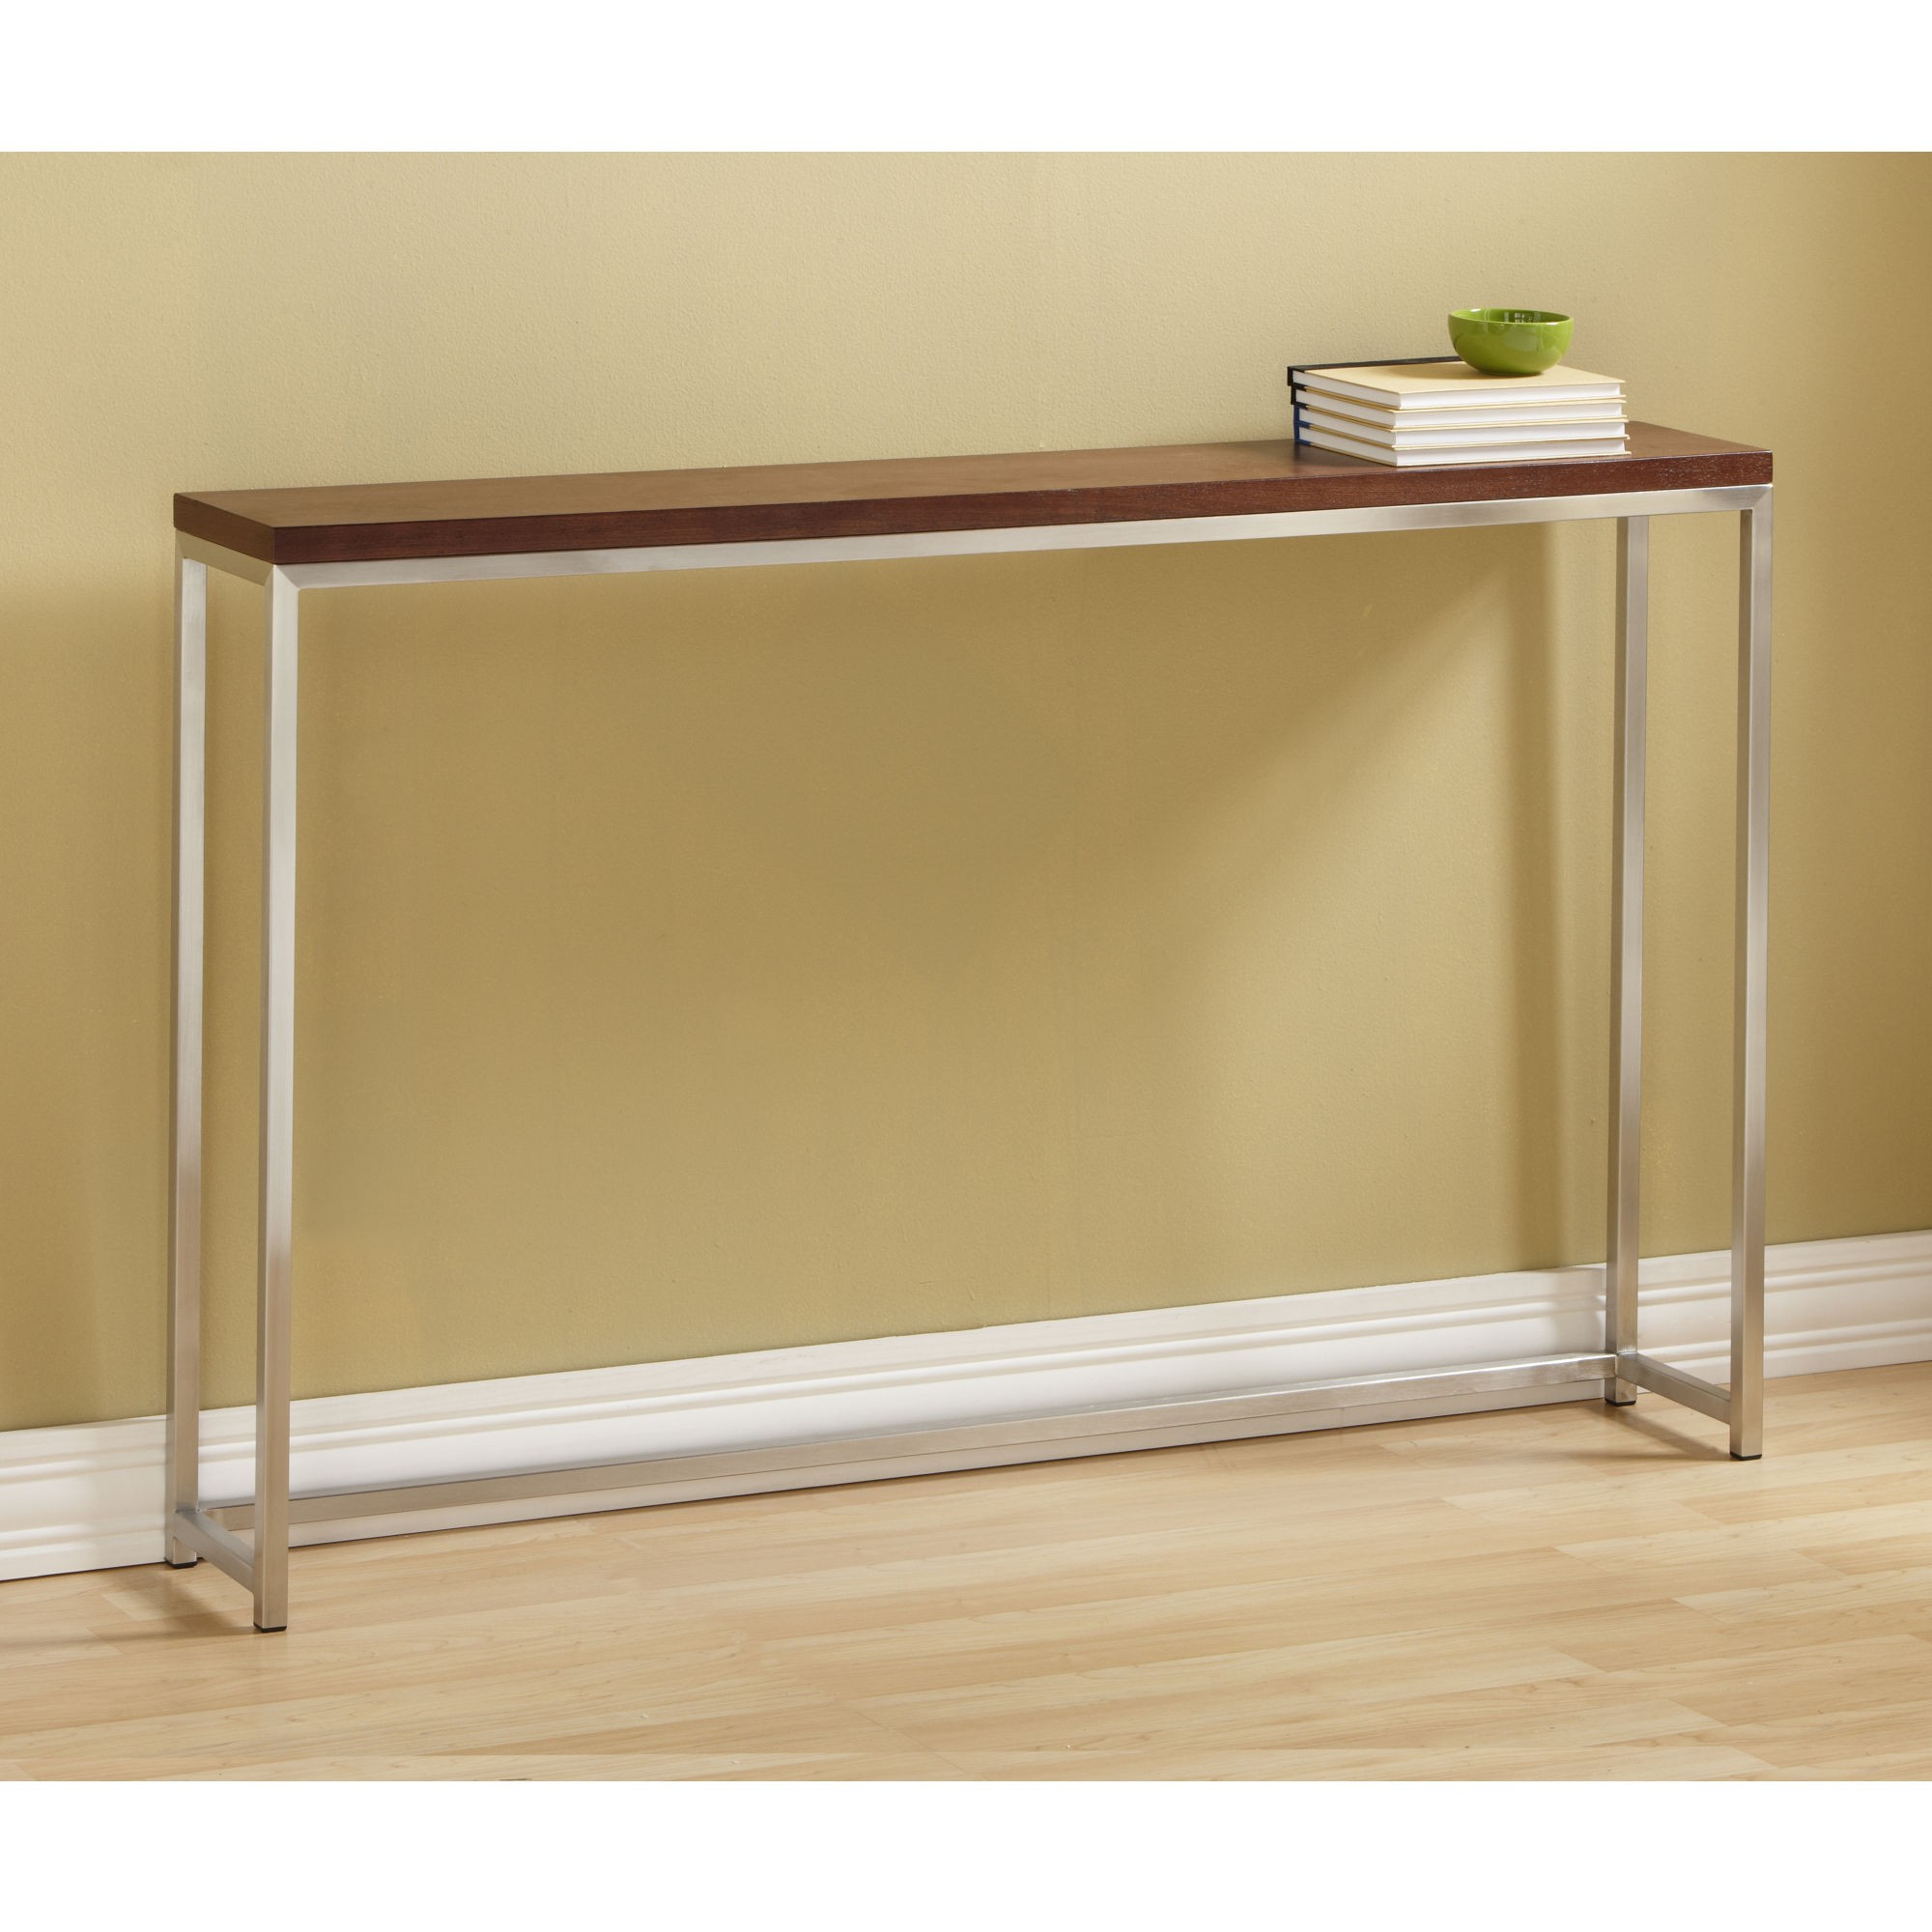 Contemporary Tall Console Table Coe With Varnished Wooden Top And With Regard To Frame Console Tables (View 9 of 30)